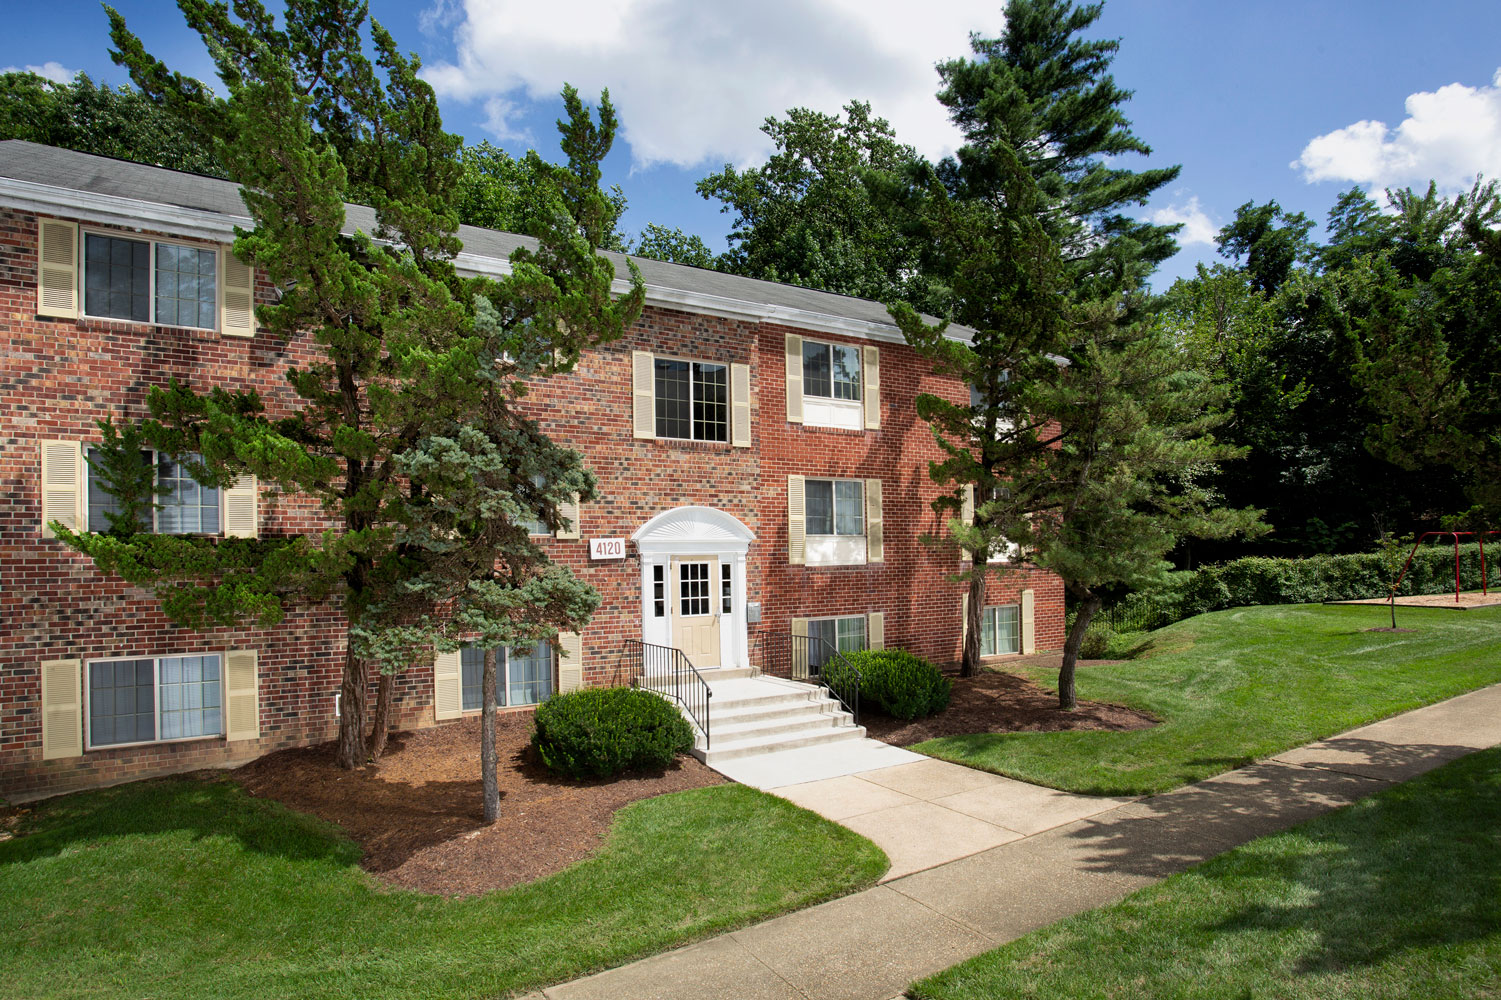 1, 2 and 3-bedroom apartments at Whitehall Square Apartments in Suitland, MD